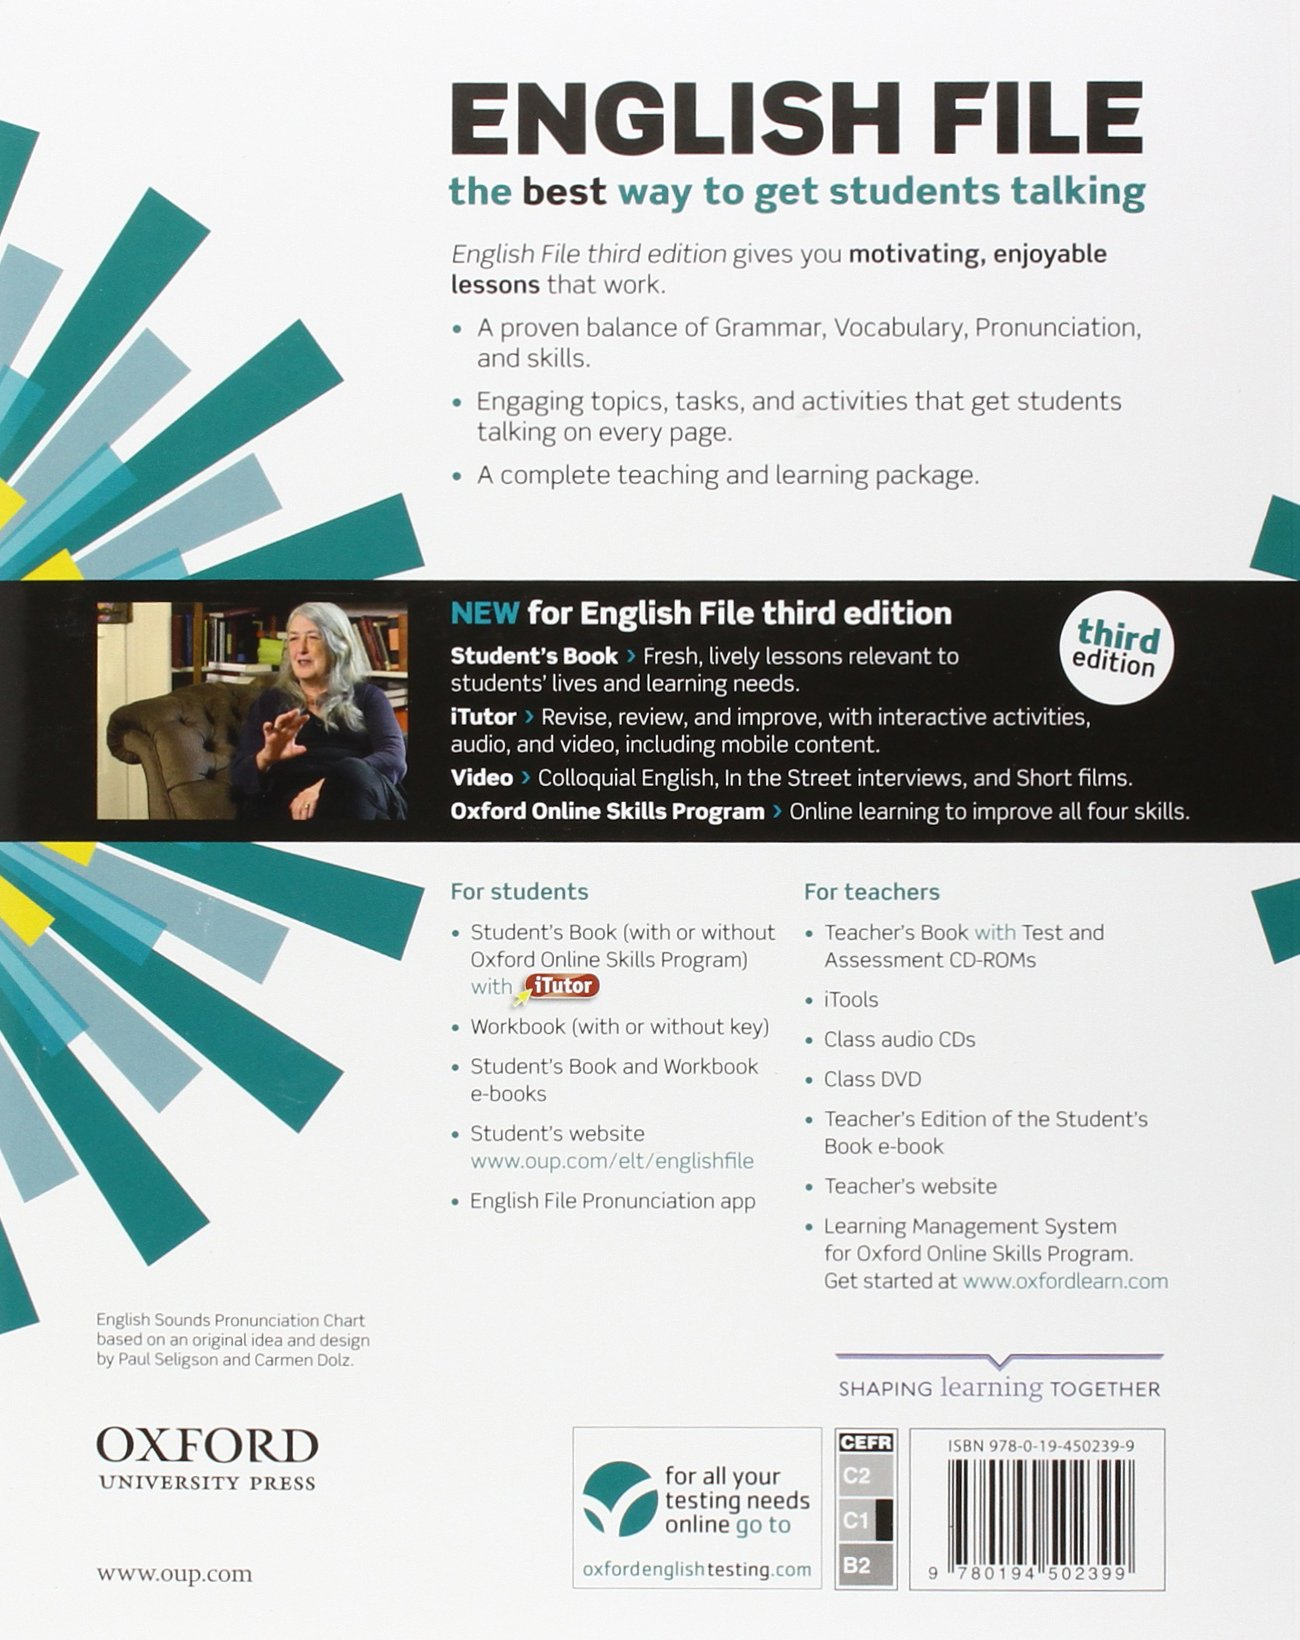 English File Advanced Student S Book With Itutor The Best Way To Get Your Students Talking Amazon Co Uk Oxenden Clive Latham Koenig Christina 9780194502399 Books